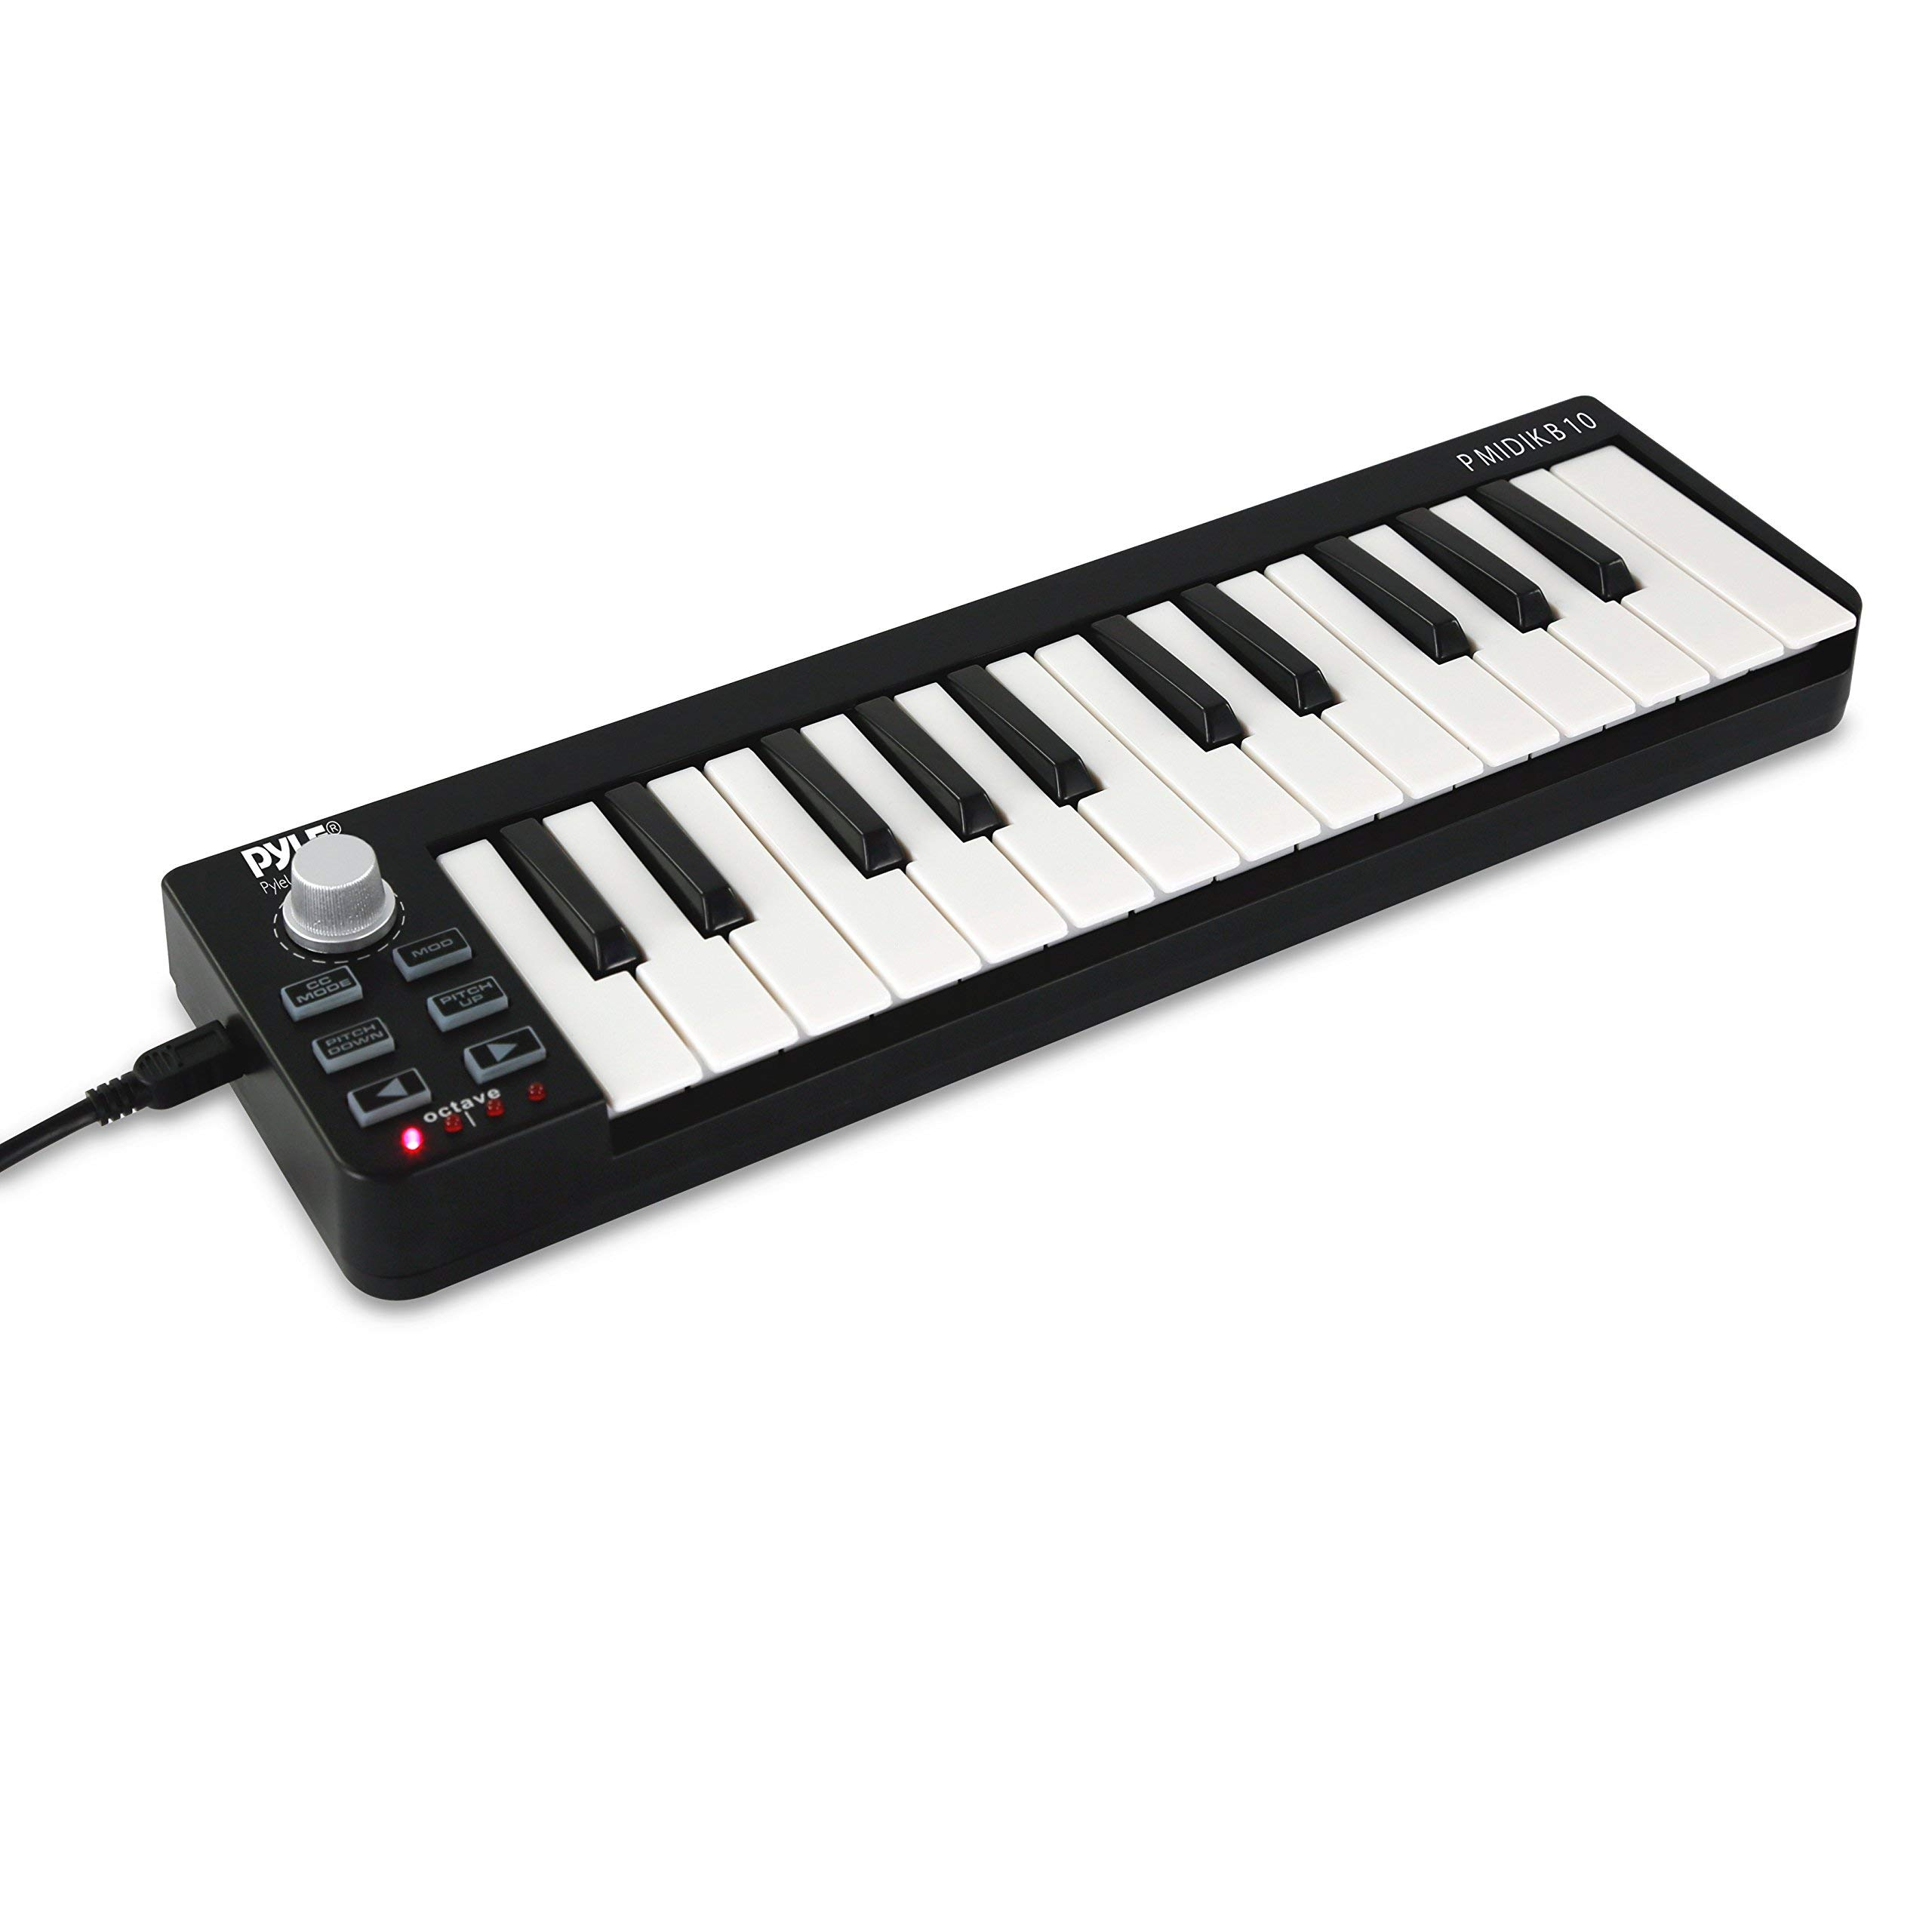 Pyle USB MIDI Keyboard Controller - 25 Key Portable Audio Recording Workstation Equipment - Hardware Buttons Control Any DAW Software for Laptop Computer Electronic Music Production - PMIDIKB10 (Renew